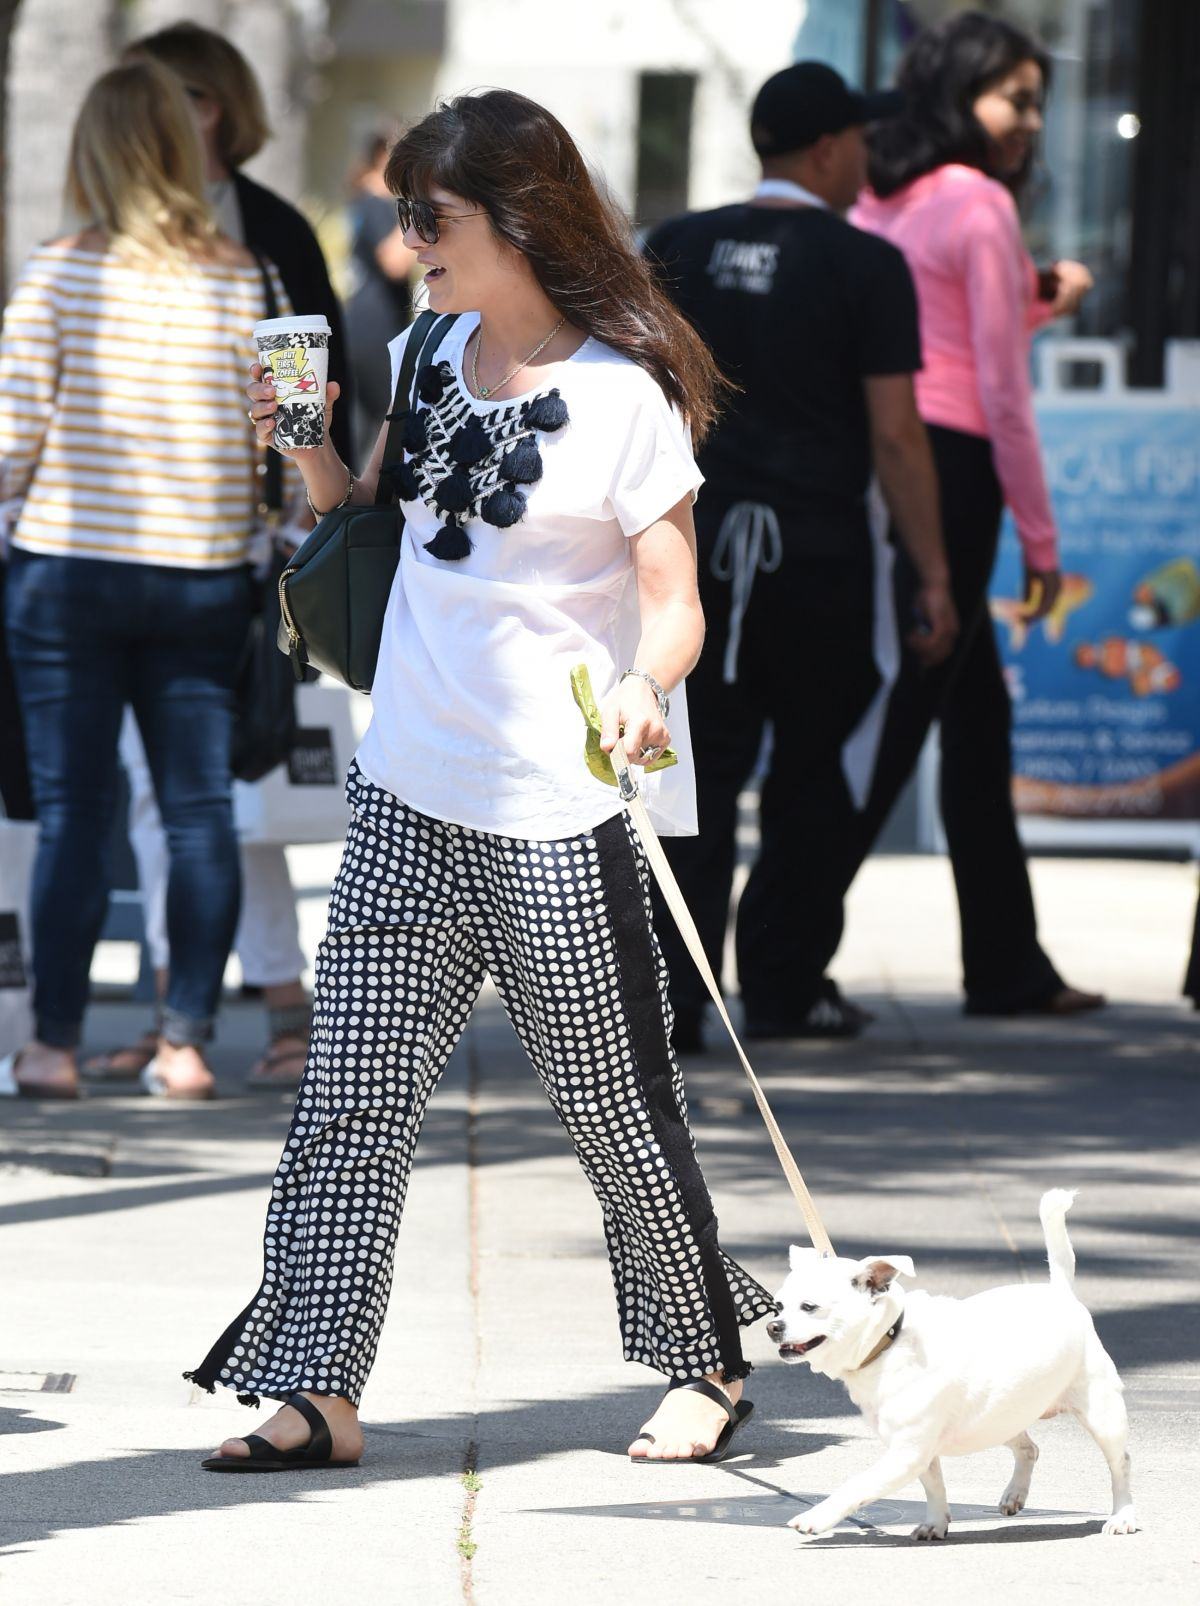 Selma Blair Out with her dog in LA   selma-blair-out-with-her-dog-in-la-_14